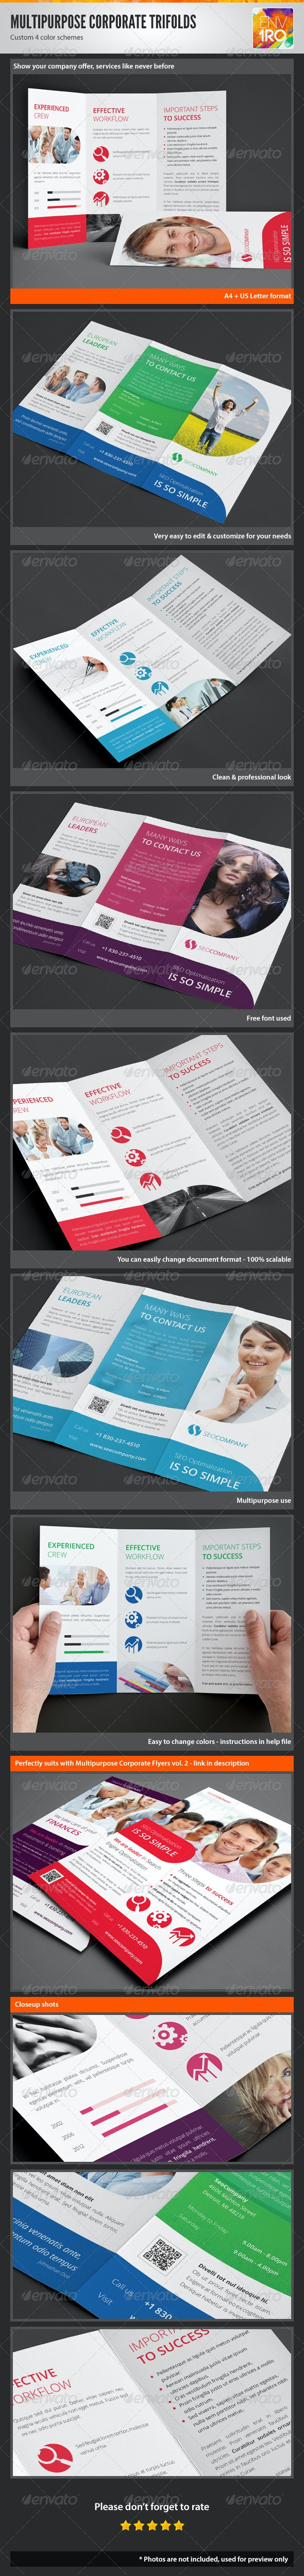 Clean Multipurpose Corporate Trifold Templates - Corporate Brochures